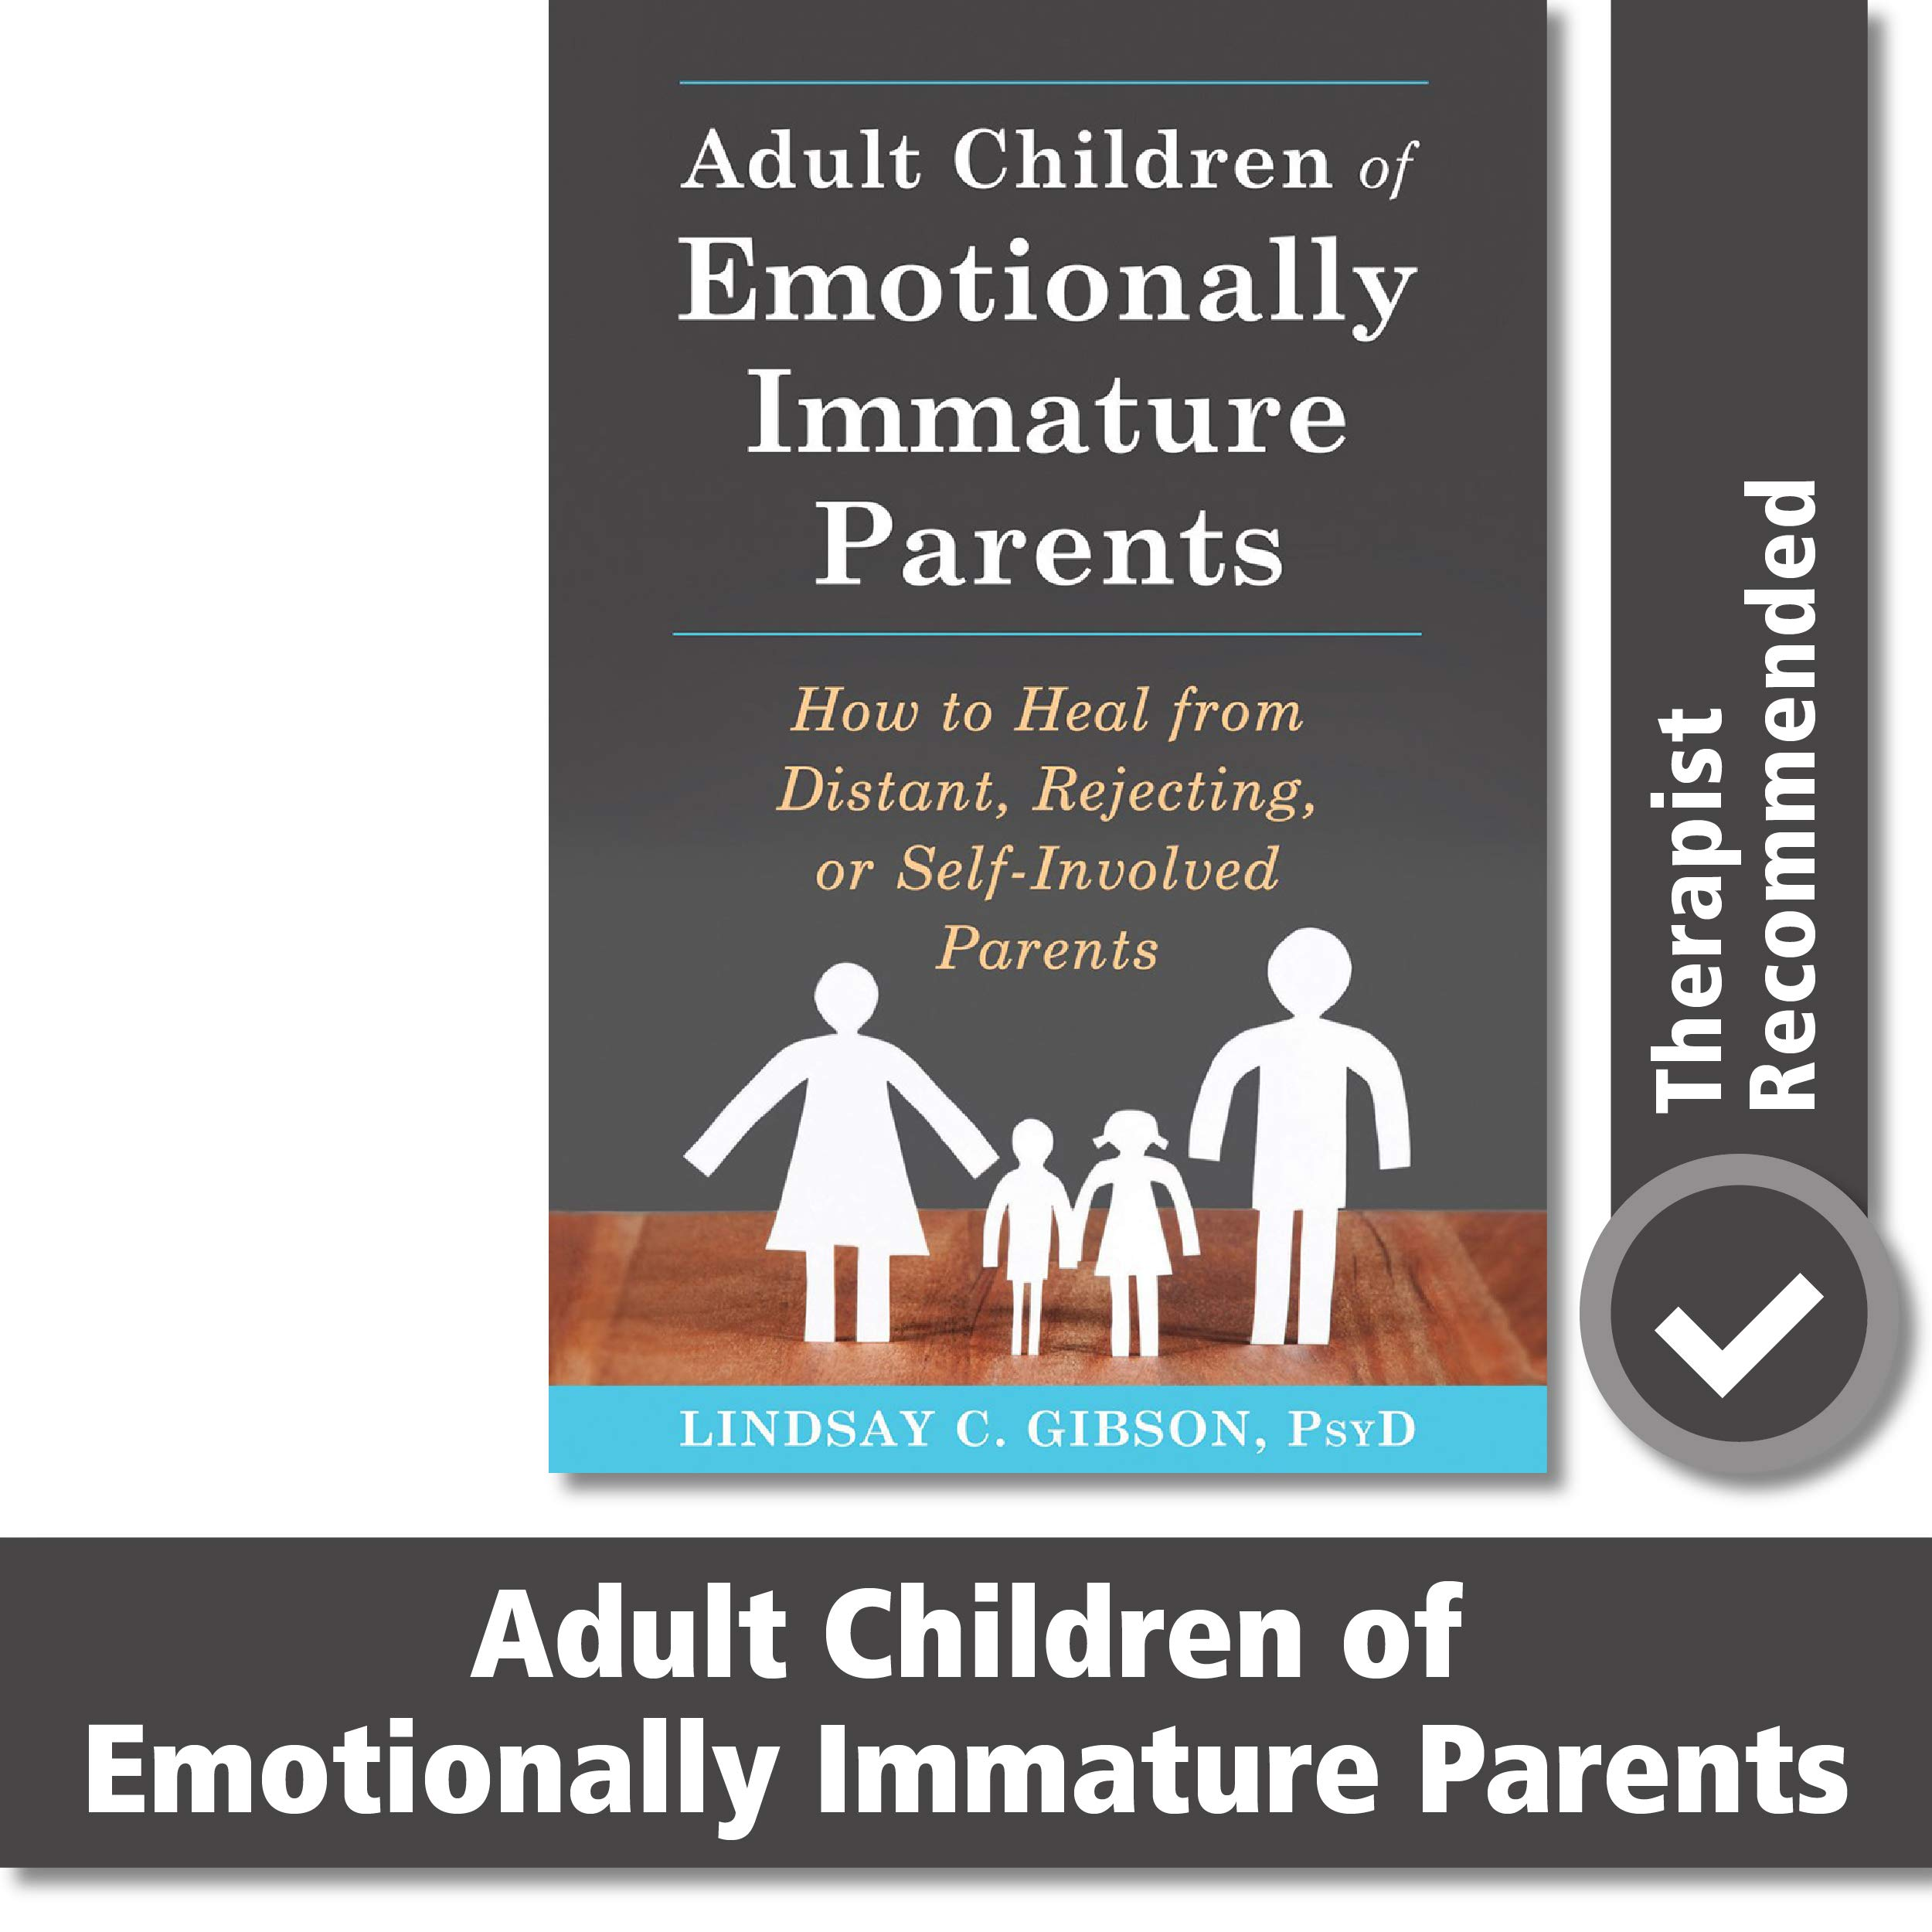 Adult Children of Emotionally Immature Parents: How to Heal from Distant, Rejecting, or Self-Involved Parents WeeklyReviewer